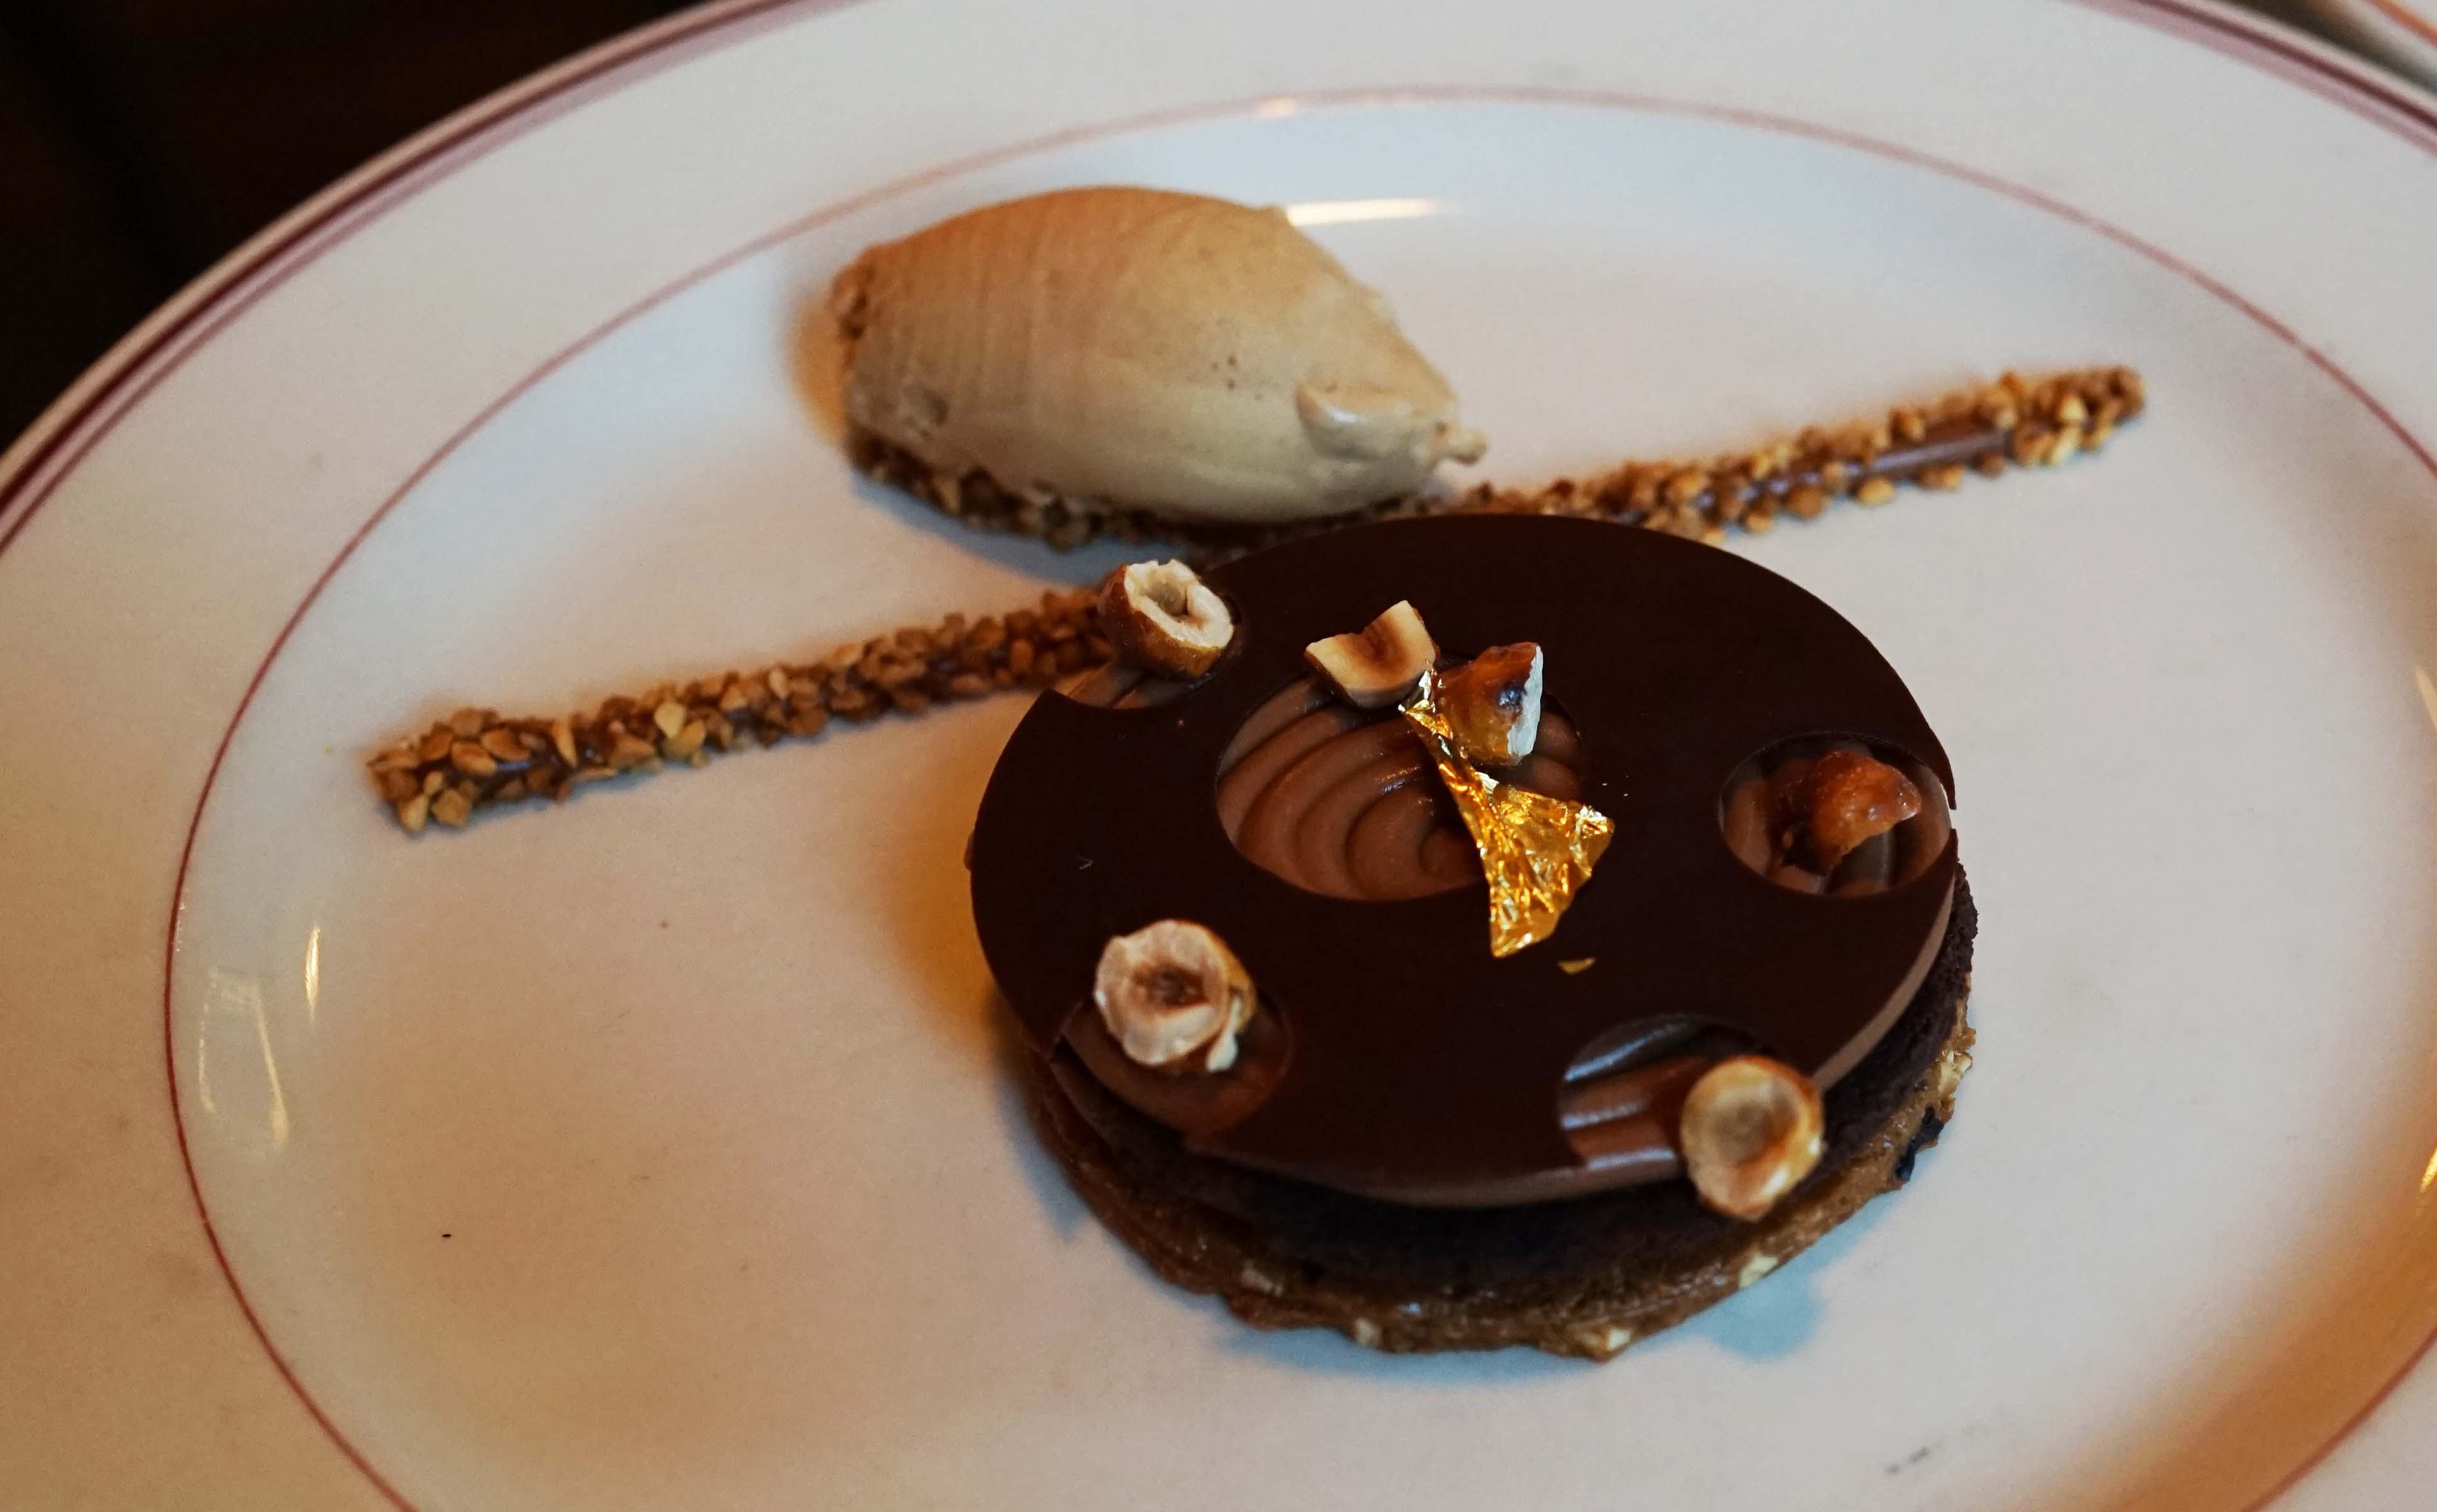 Le Diplomate chocolate wafer dessert